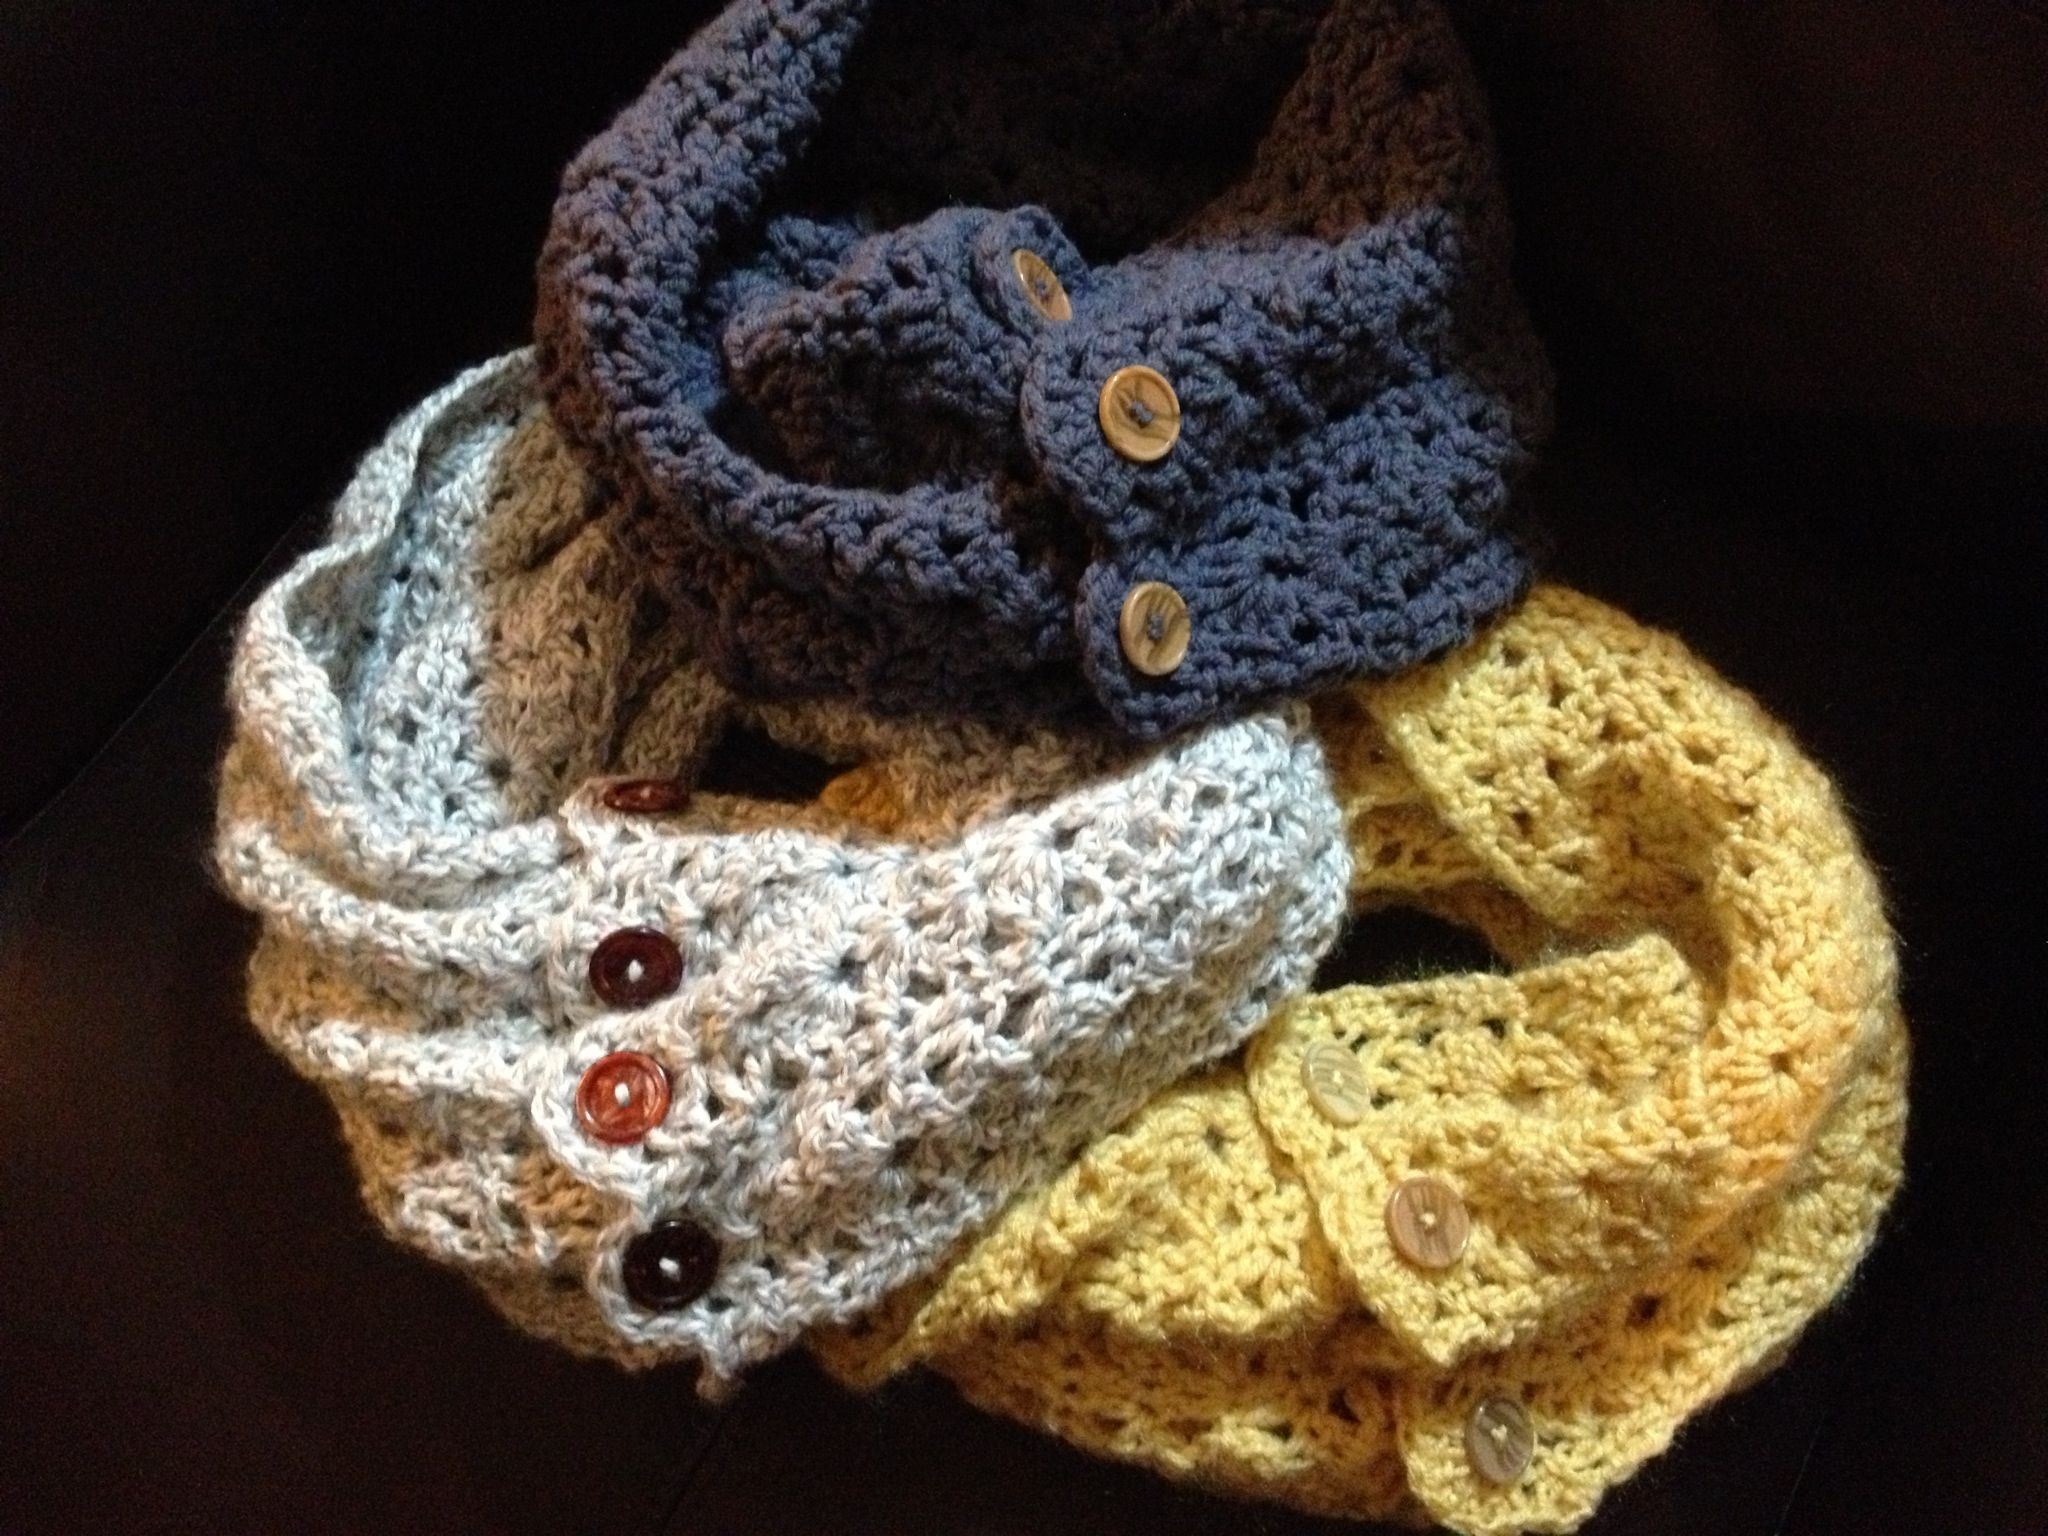 Crochet Pattern For Infinity Scarf With Buttons : Best 20+ Crochet infinity scarves ideas on Pinterest ...